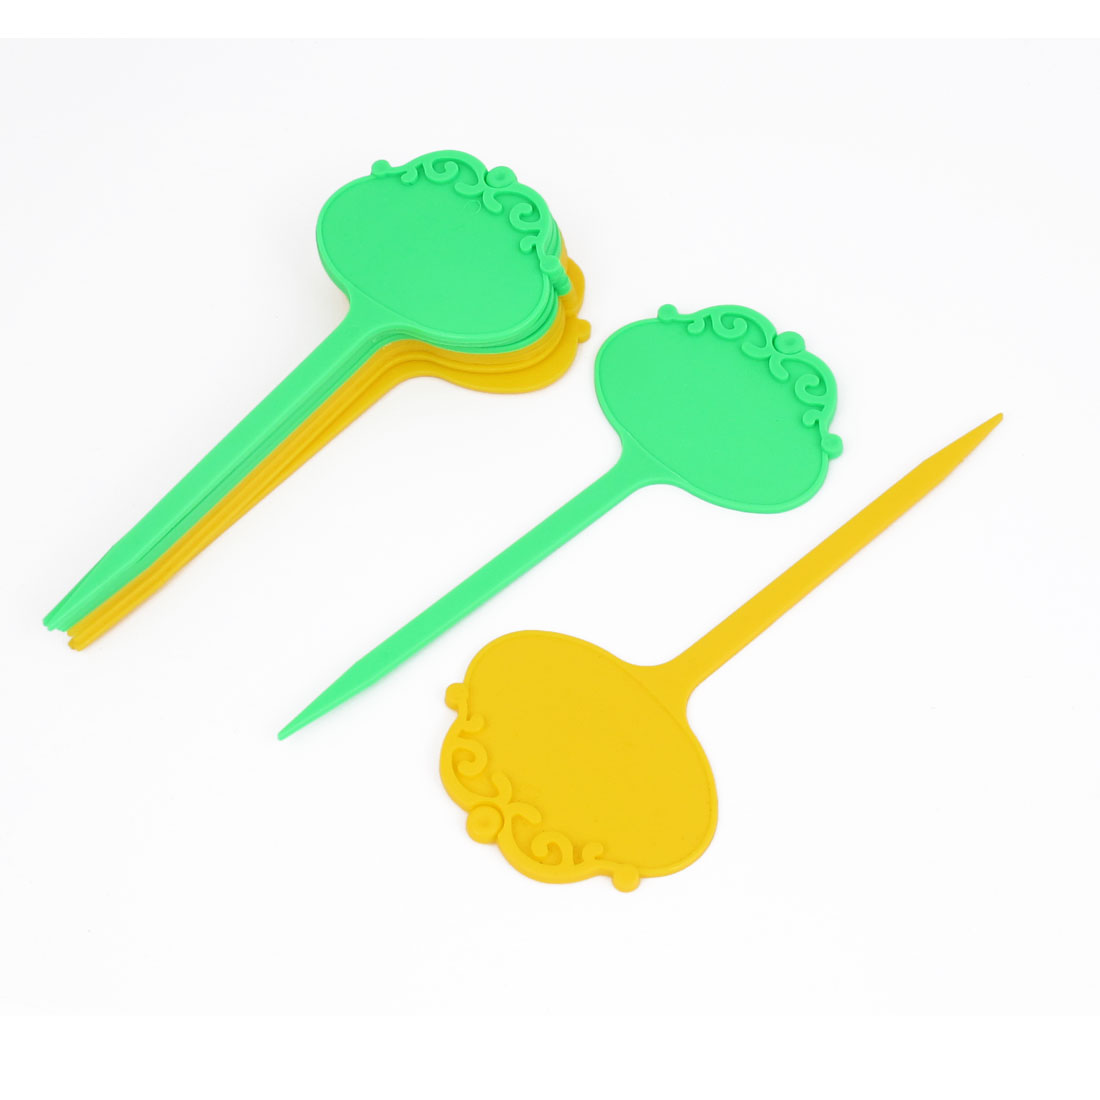 10pcs Seedling Nursery Gardening Yard Plants Seeds Tag Label Marker Stick Green Yellow